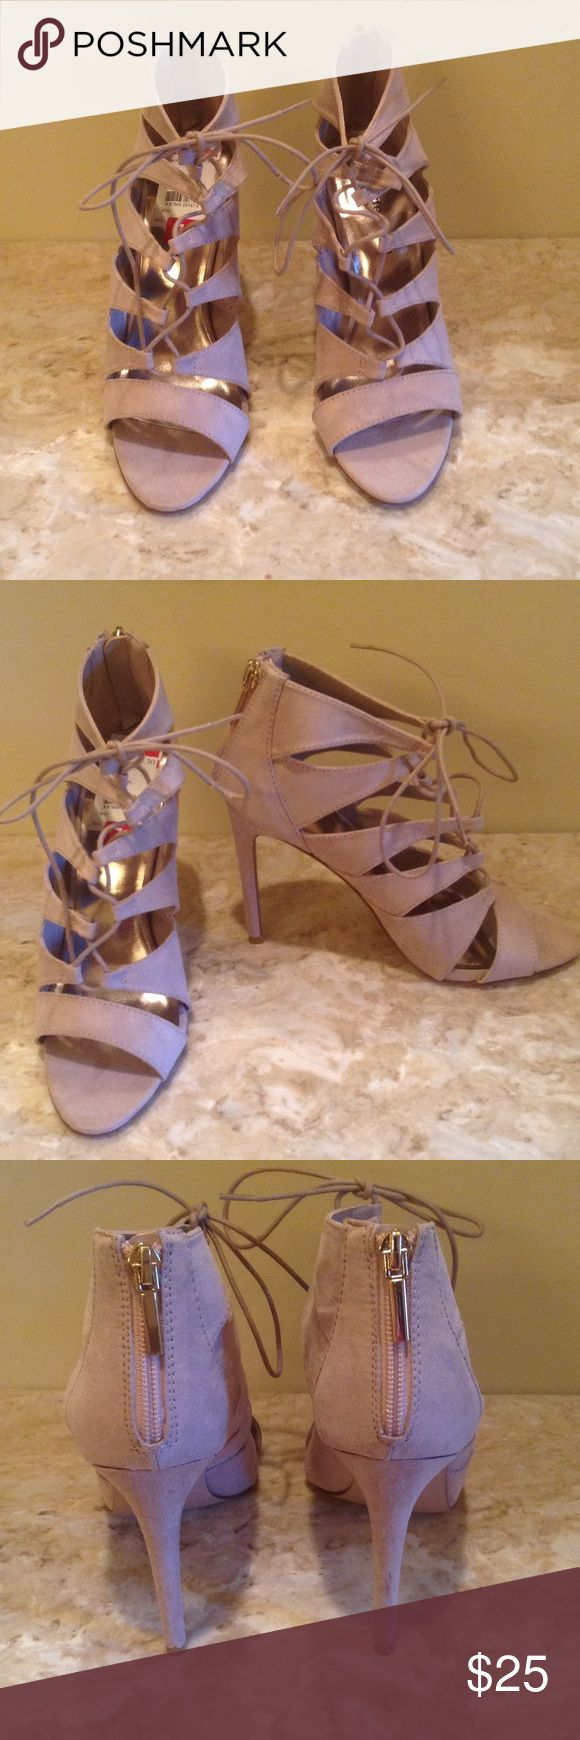 Madden Girl Raceyyy Madden girl lace up heels size 7.5. Color taupe, faux suede material. Madden Girl Shoes Heels